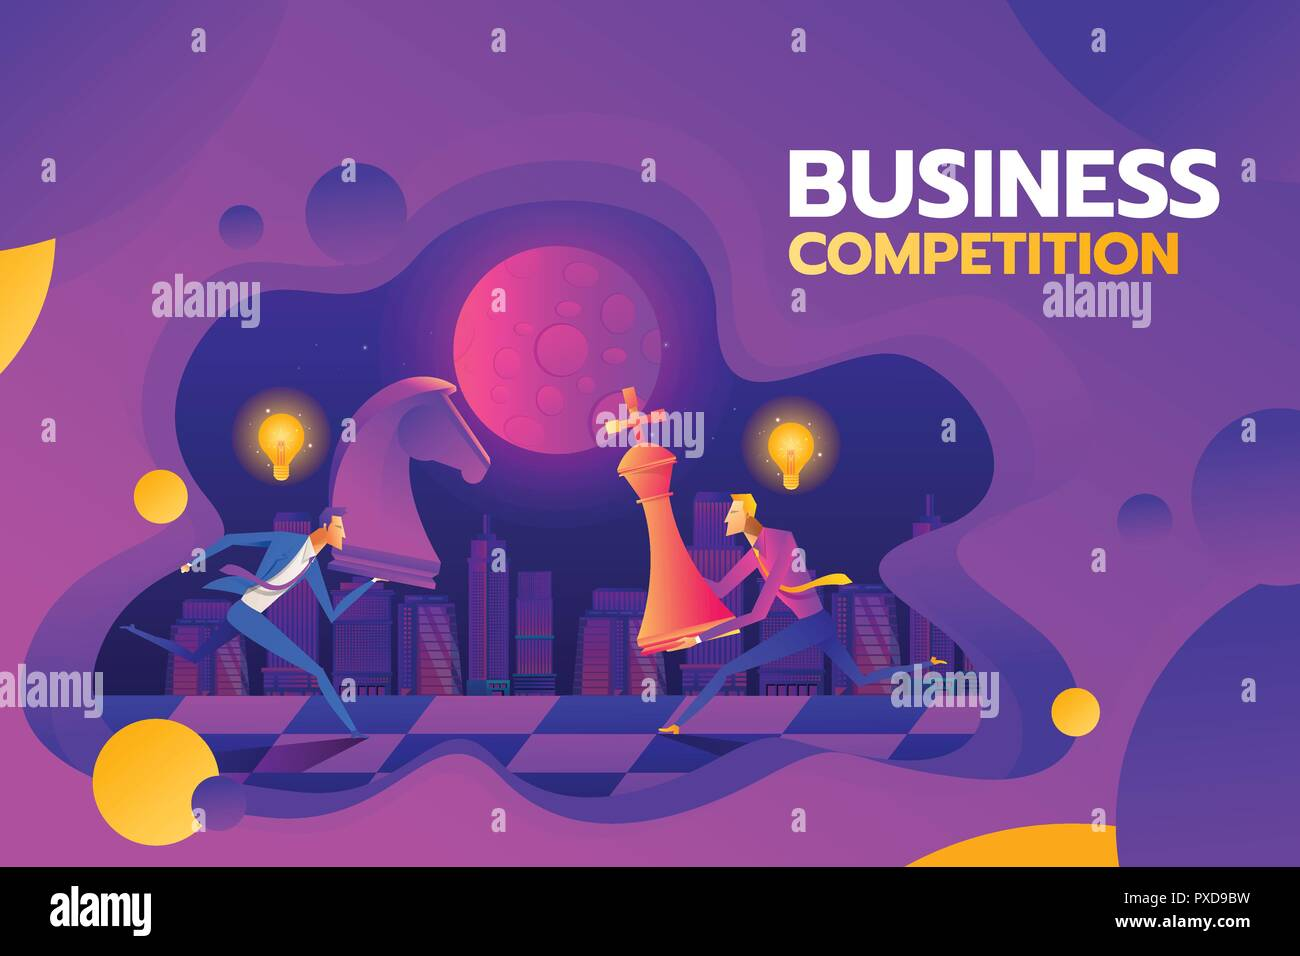 Concept of business competition. Businessmen hold chess pieces in hands of punching as a symbol of rivalry, competition, corporate conflict. Vector illustration, flat design. Hitting chess figures - Stock Vector